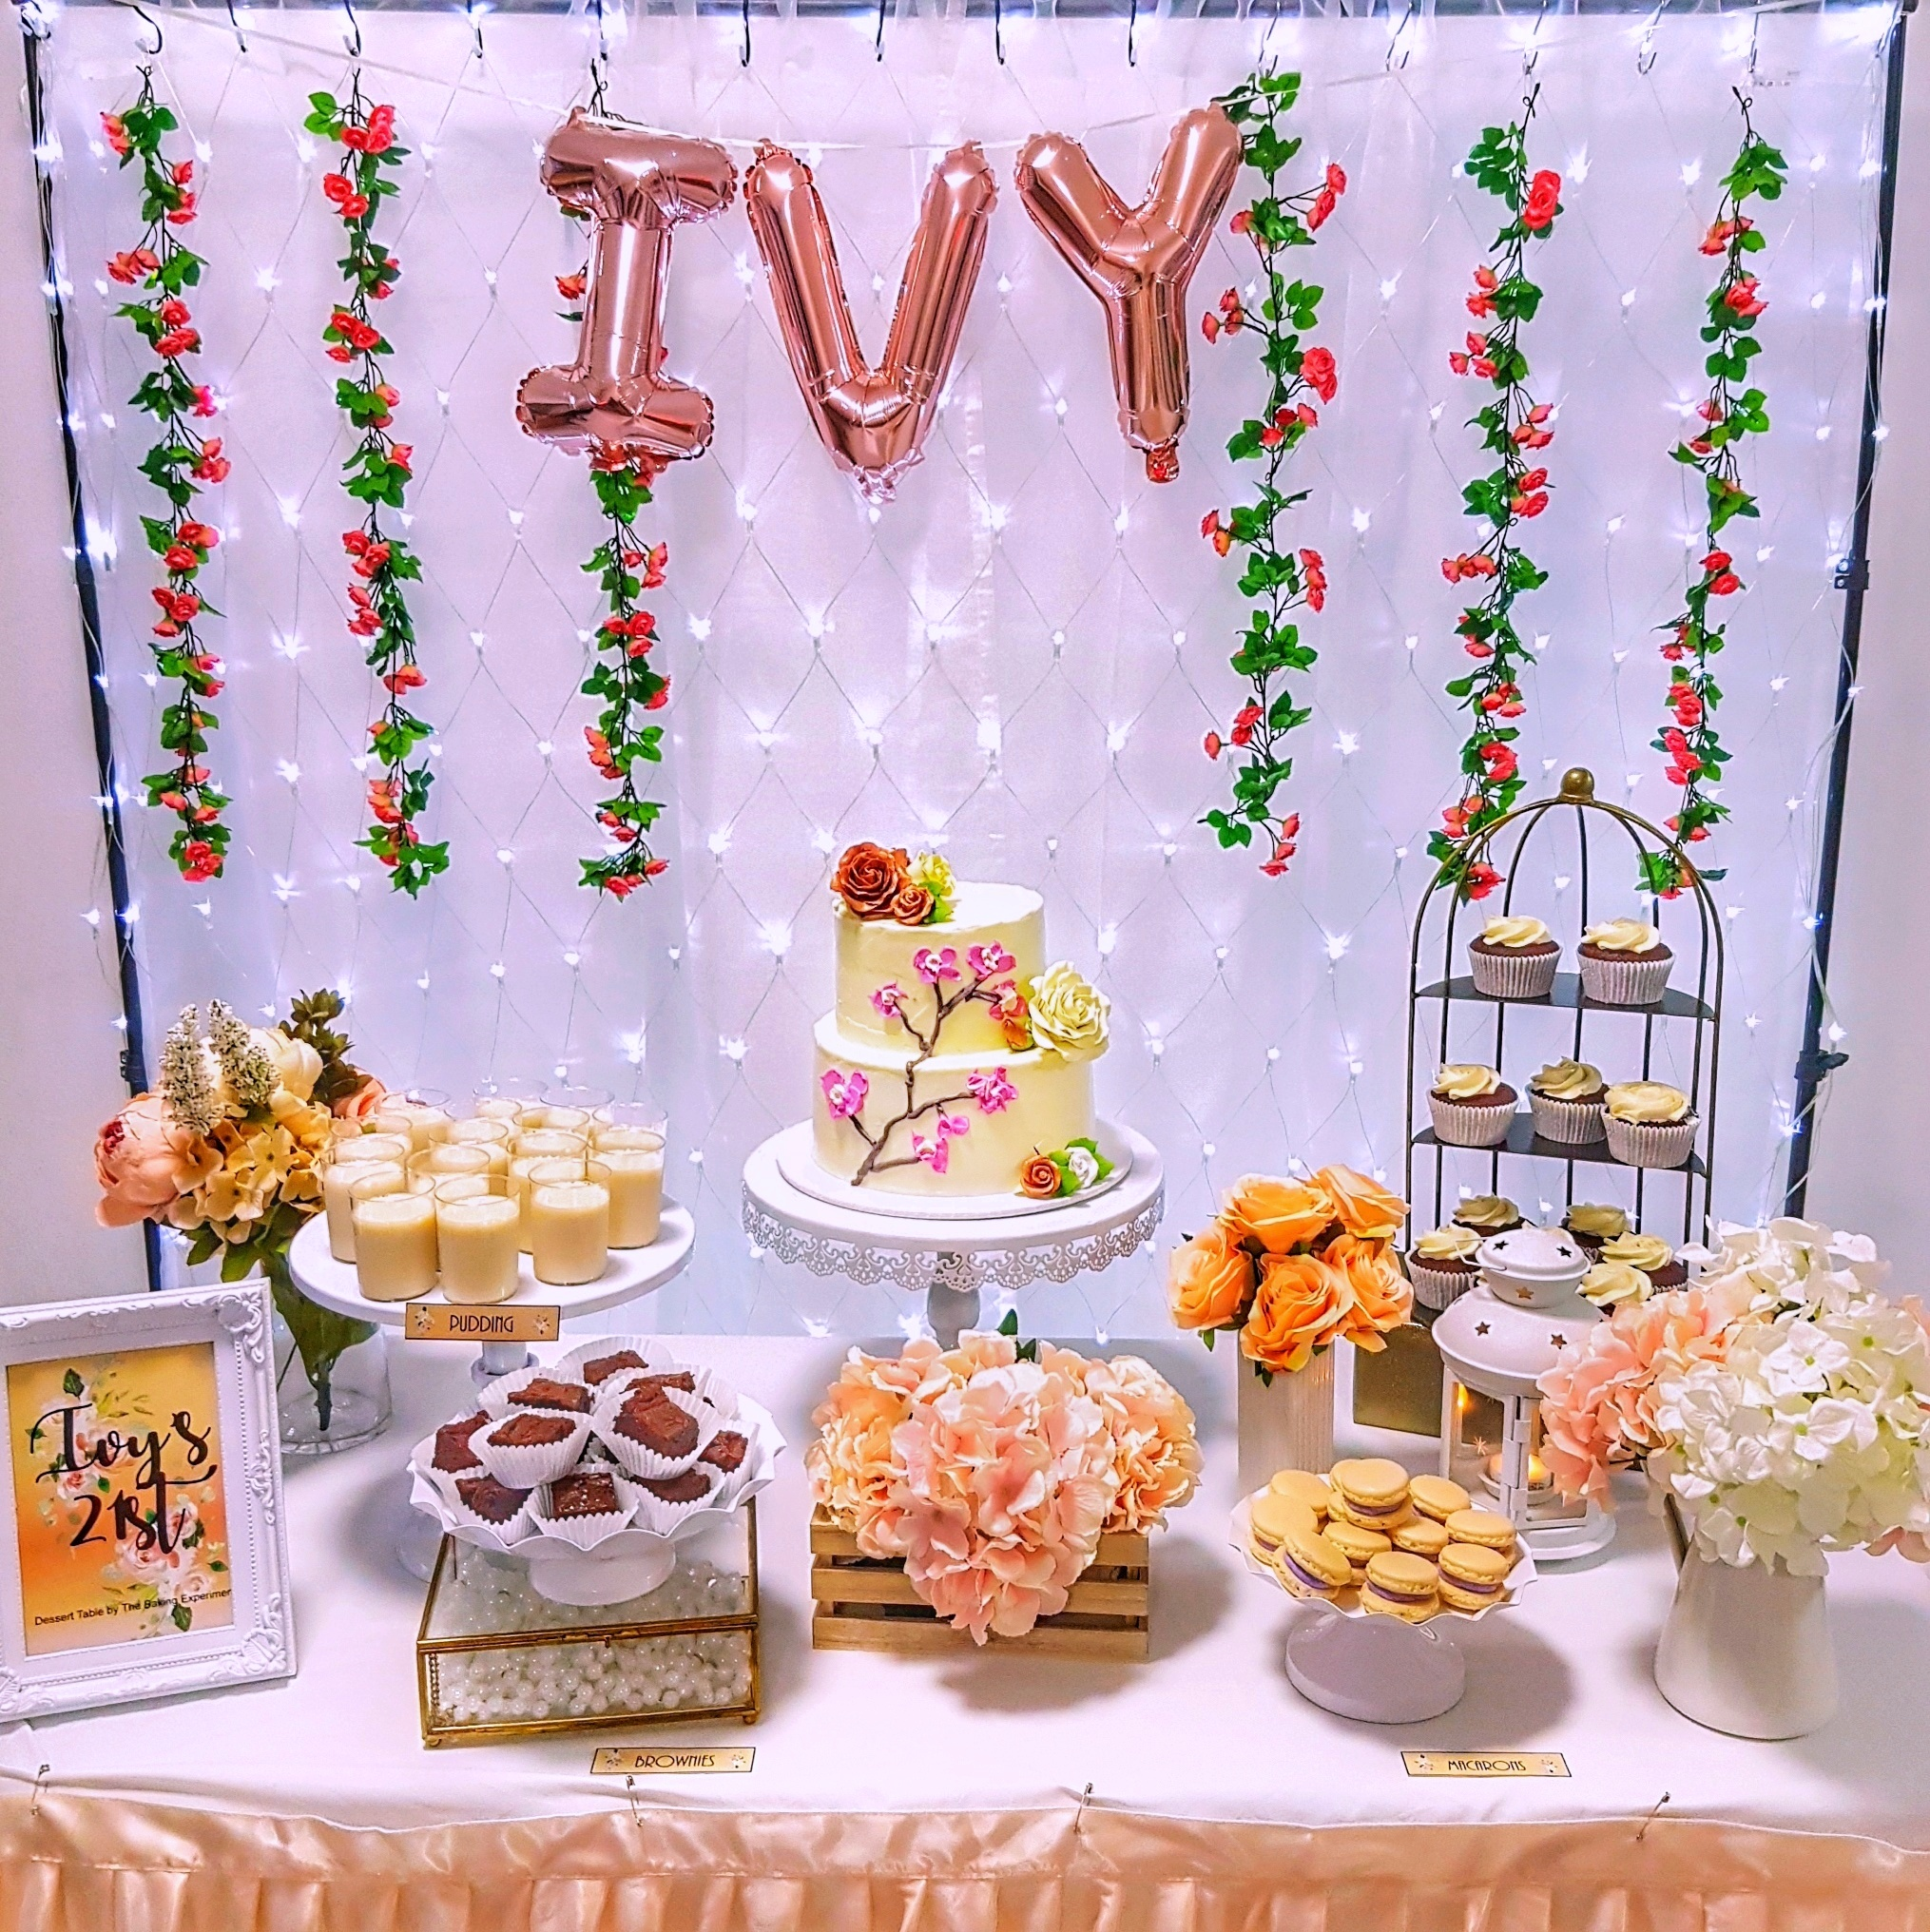 Rose Gold Floral Dessert Table by The Baking Experiment